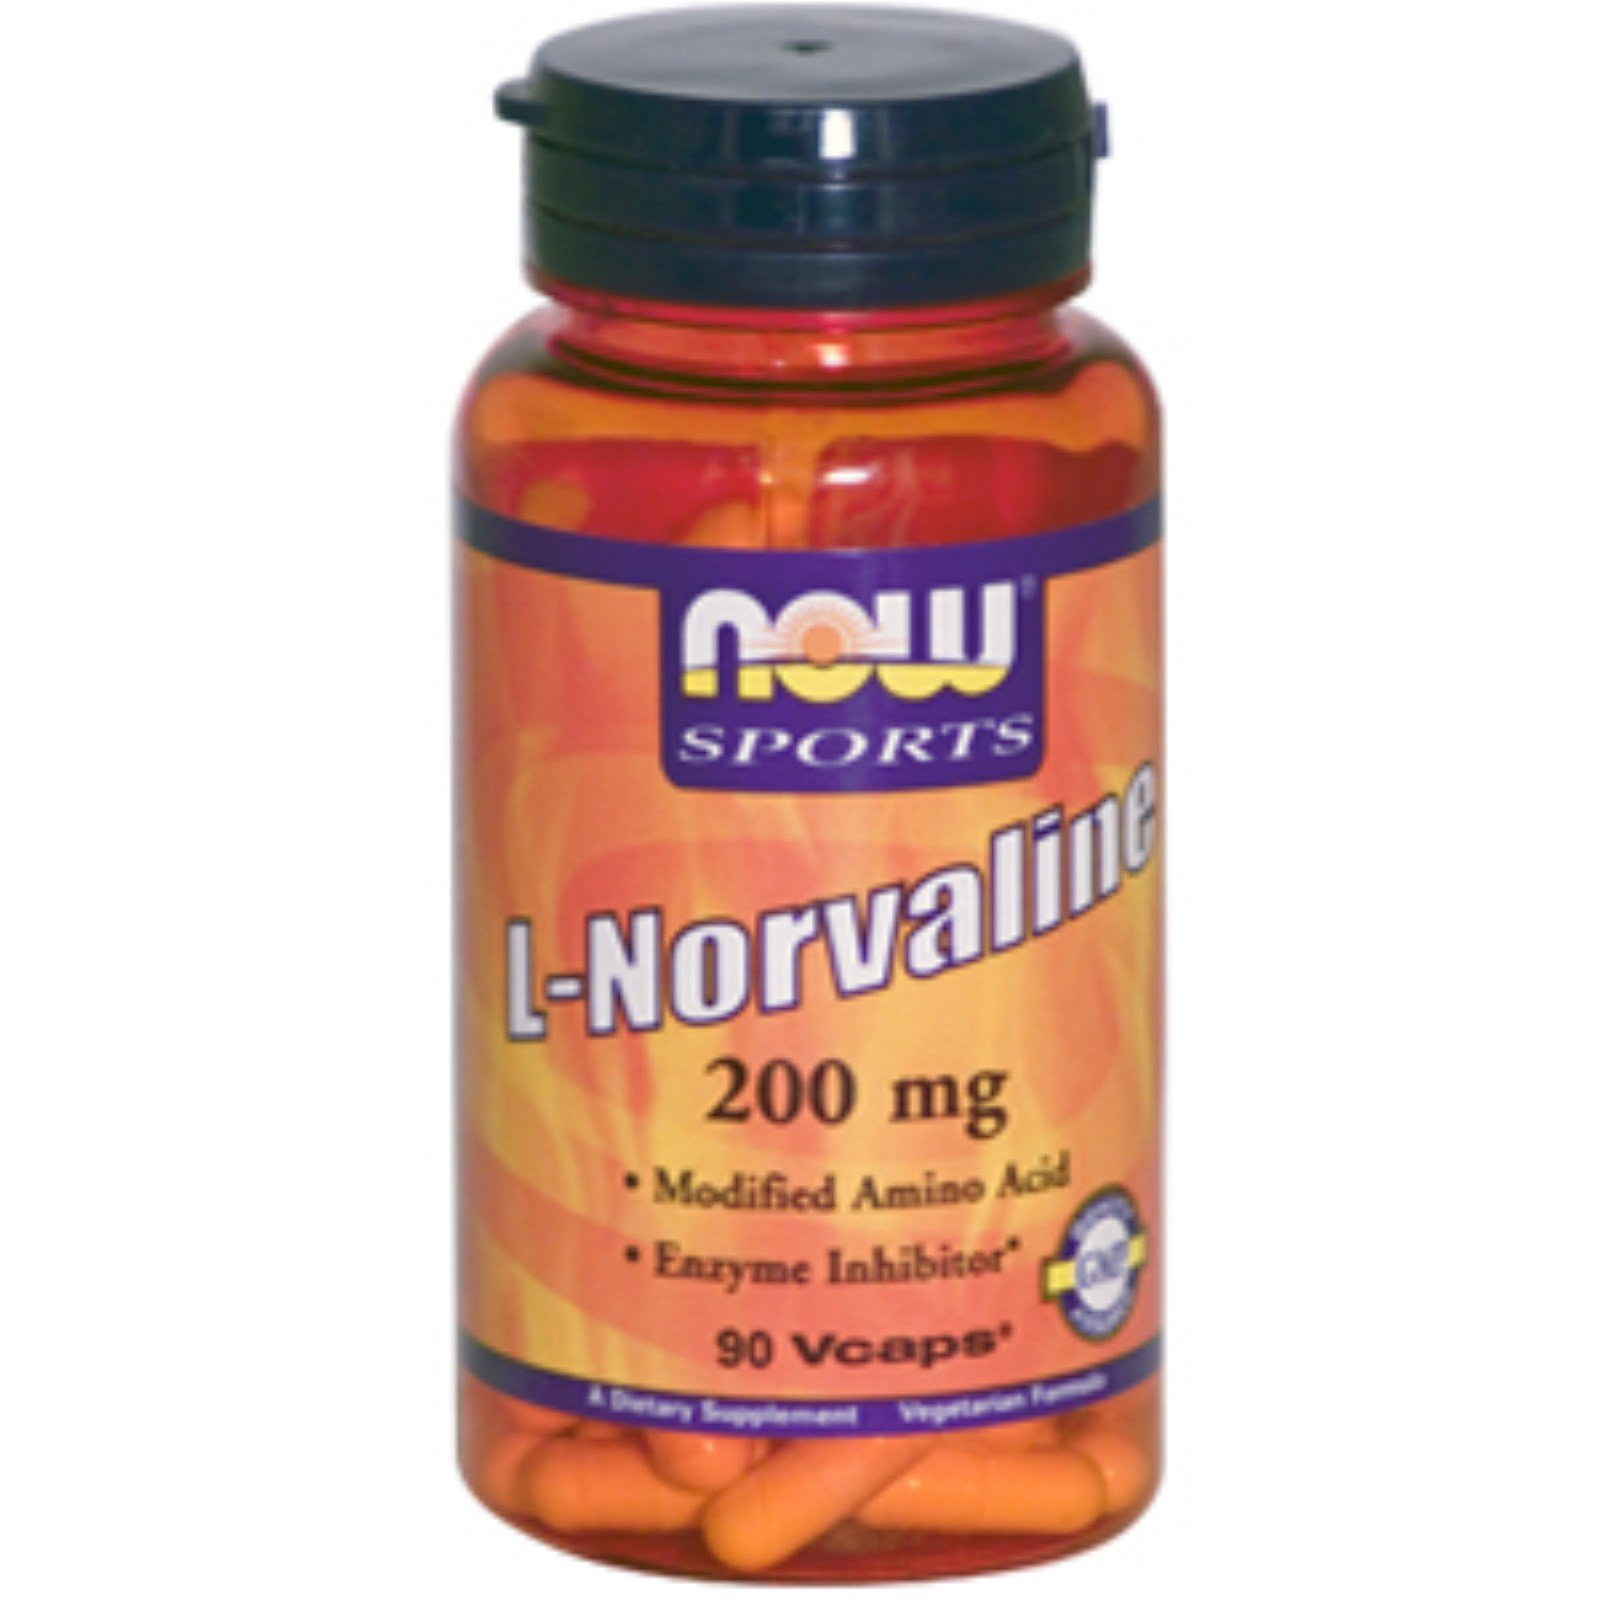 Image result for L-norvaline